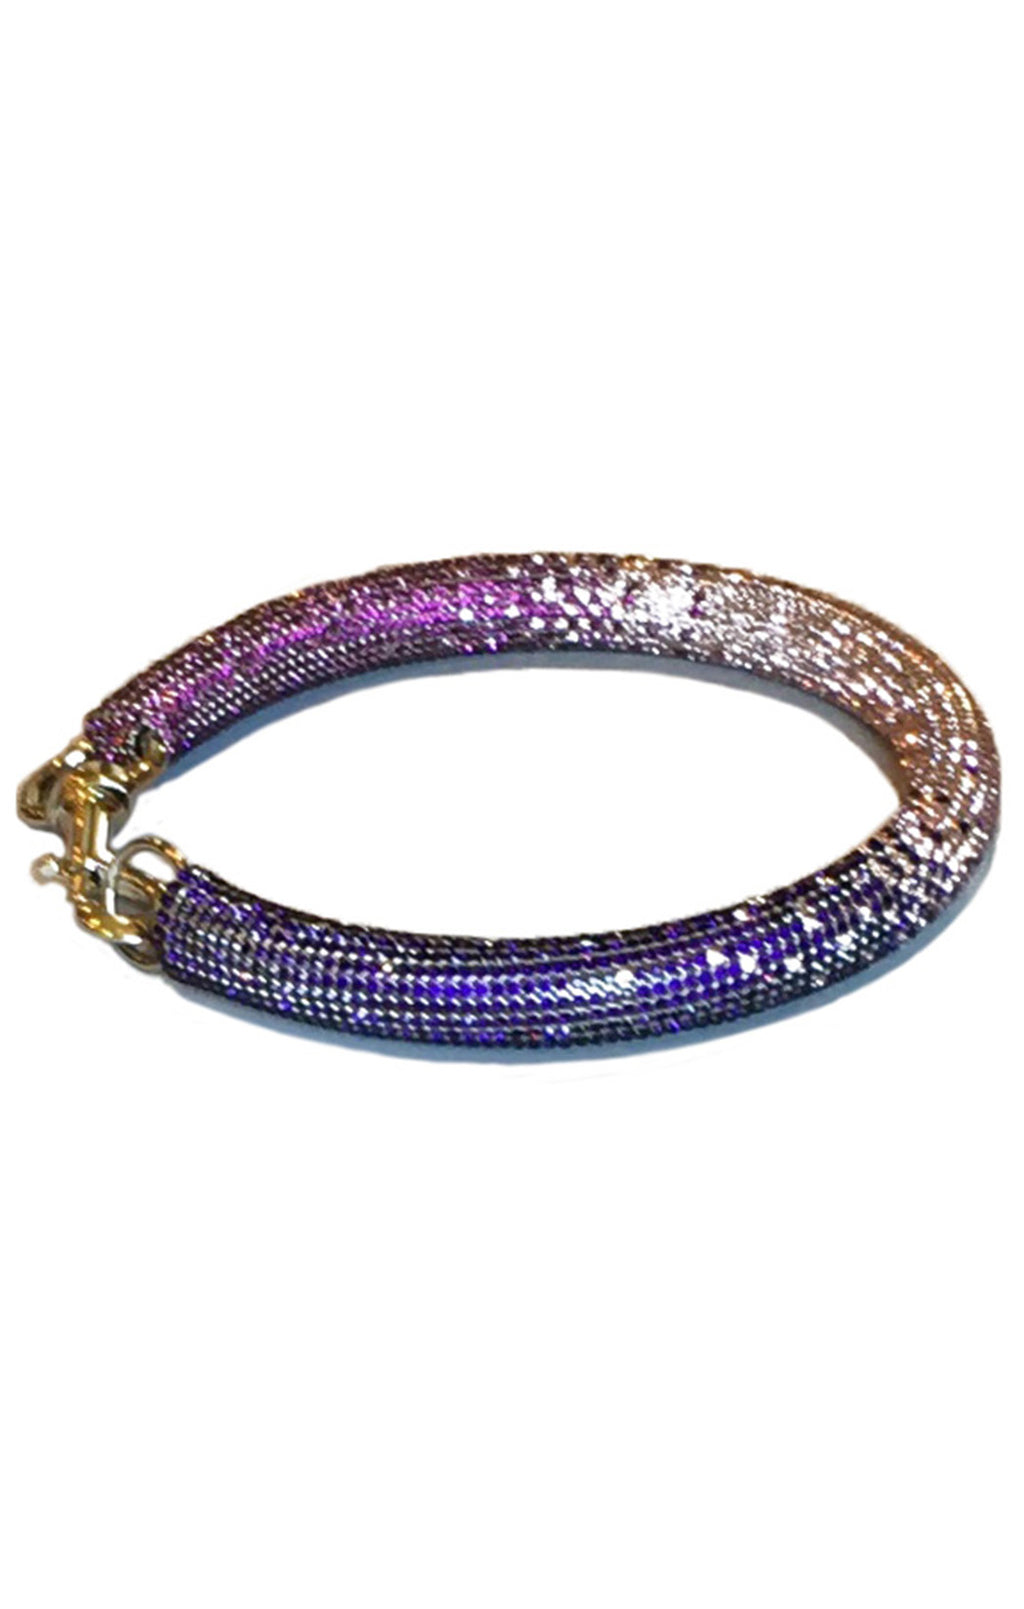 Pink to purple ombré thick necklace with silver metal clasp